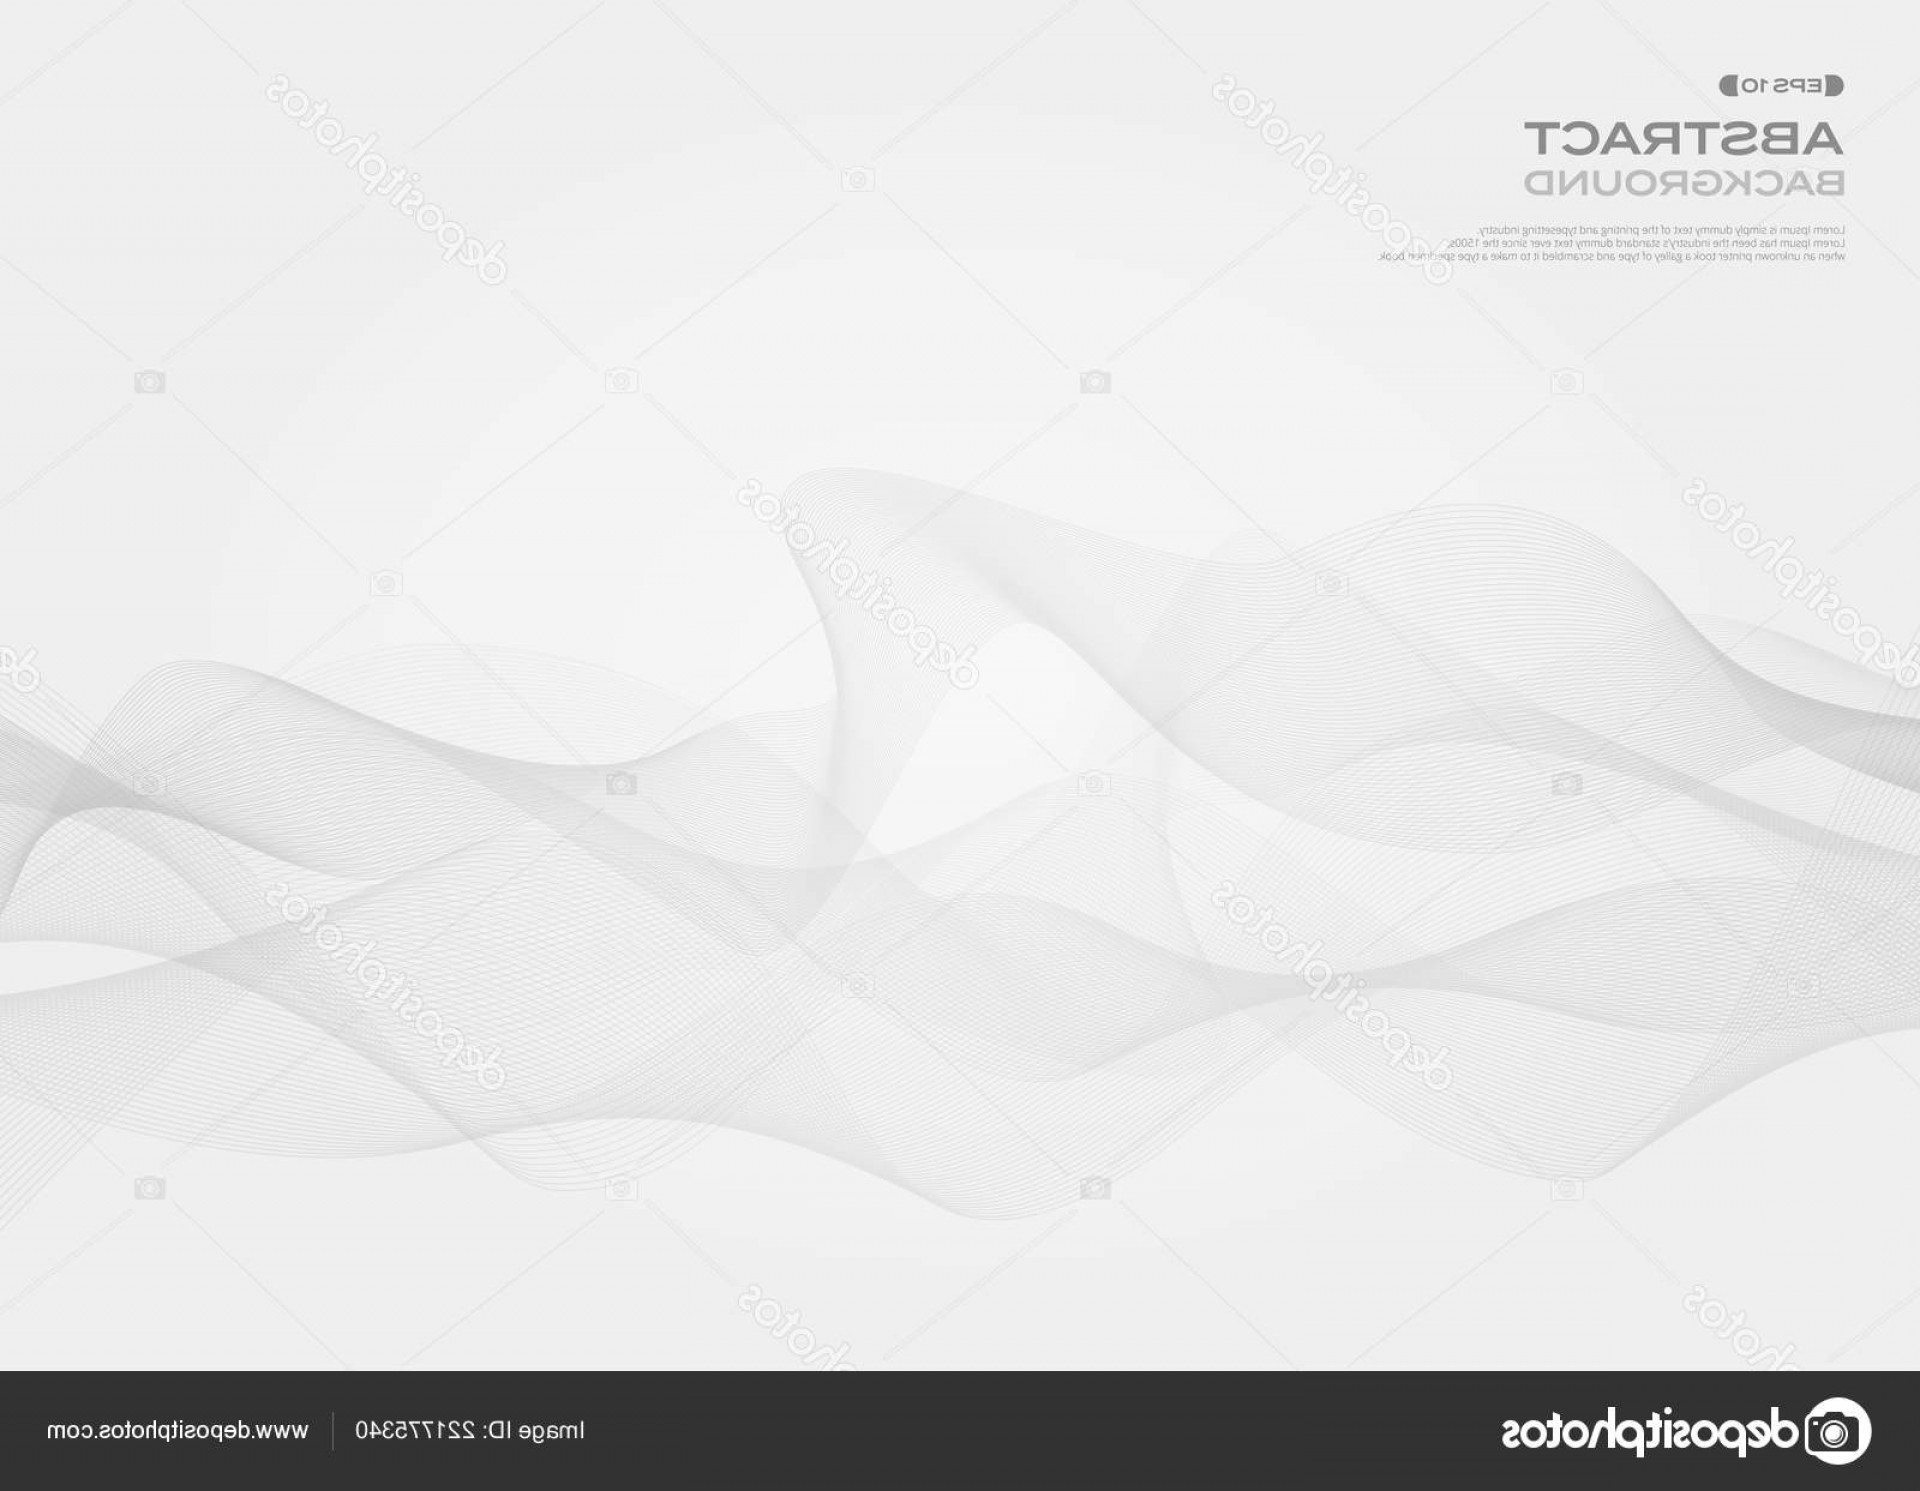 Free Vector Backgrounds Illustrator Free Download: Stock Illustration Abstract Gray Free Style Stripe